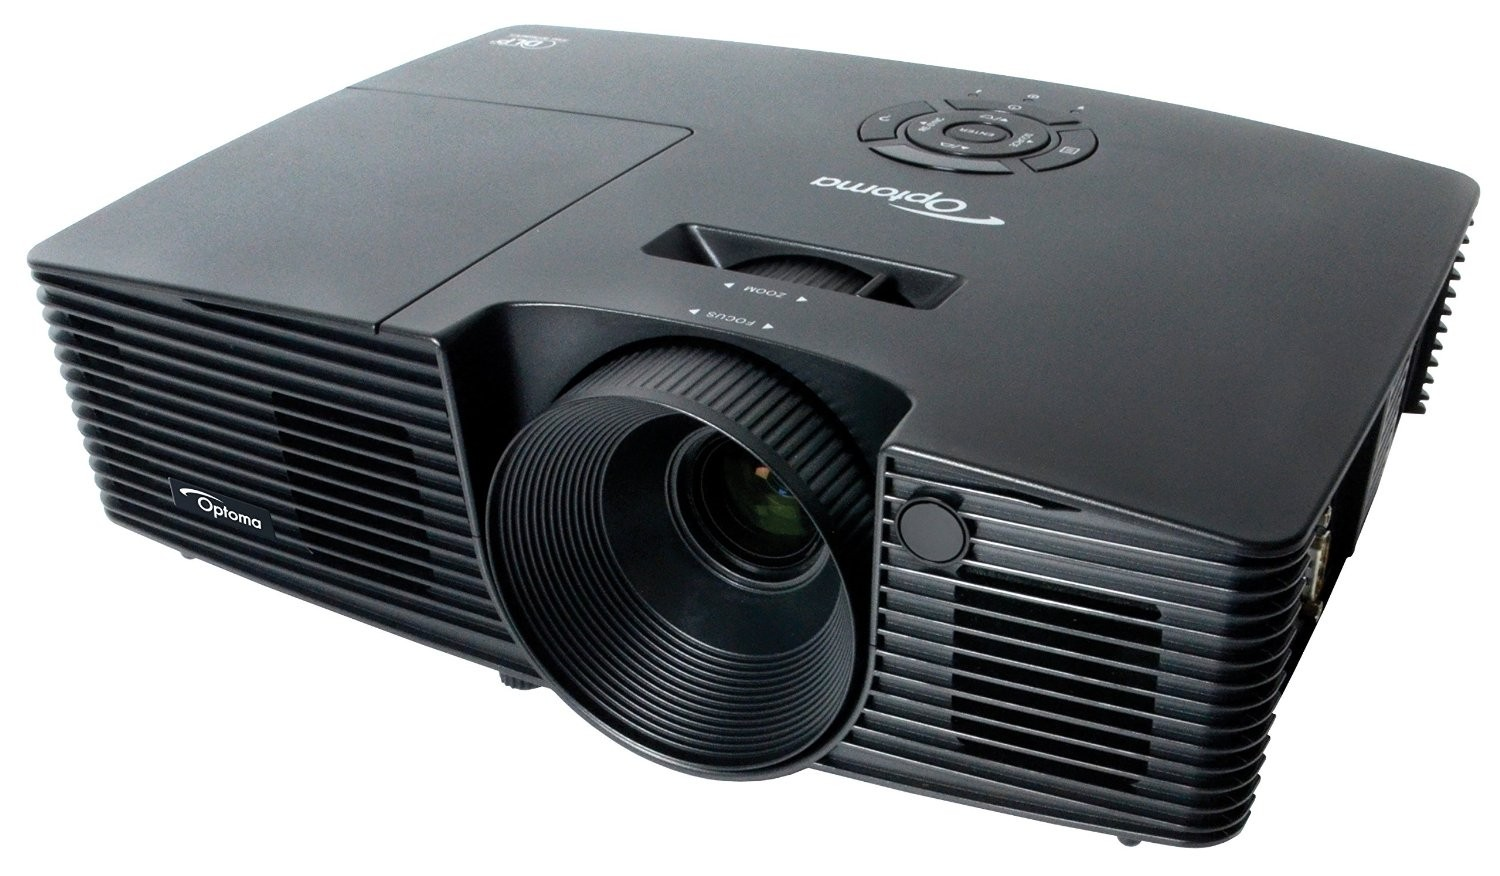 Optoma S310e Full 3D SVGA 3200 Lumen Multimedia DLP Projector For Sale In Trinidad